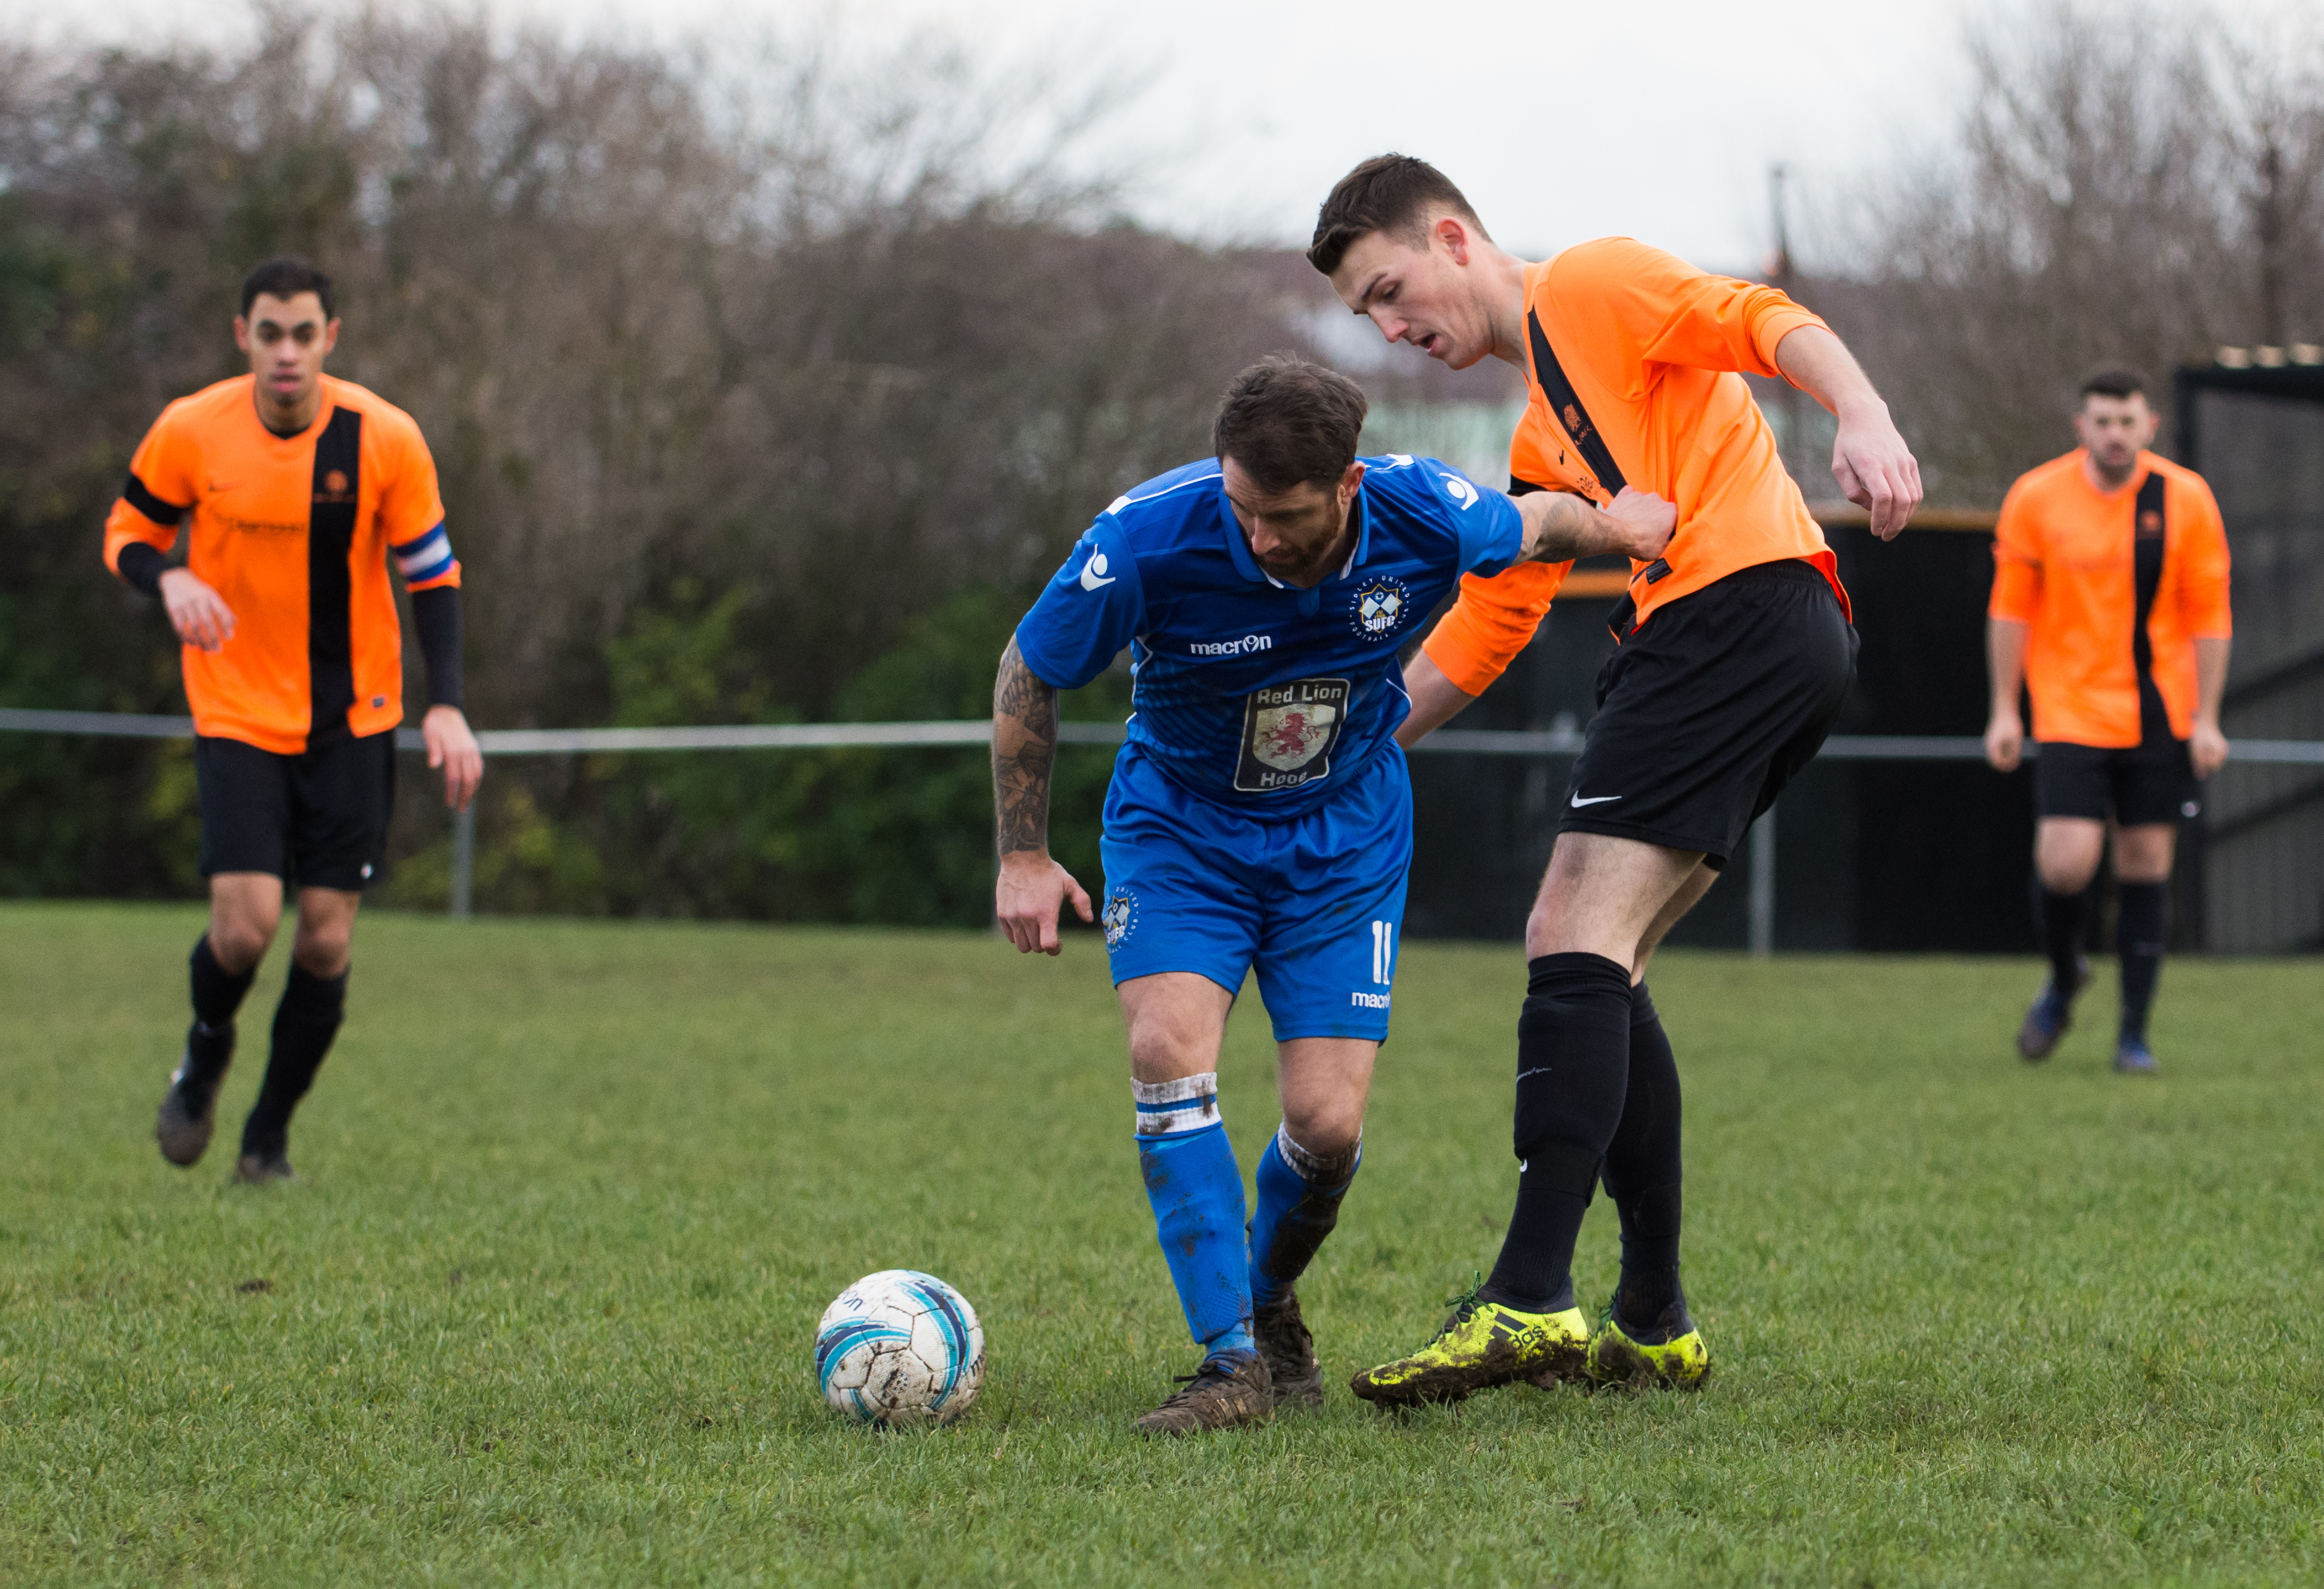 Mile Oak Res vs Sidley United 09.12.17 04